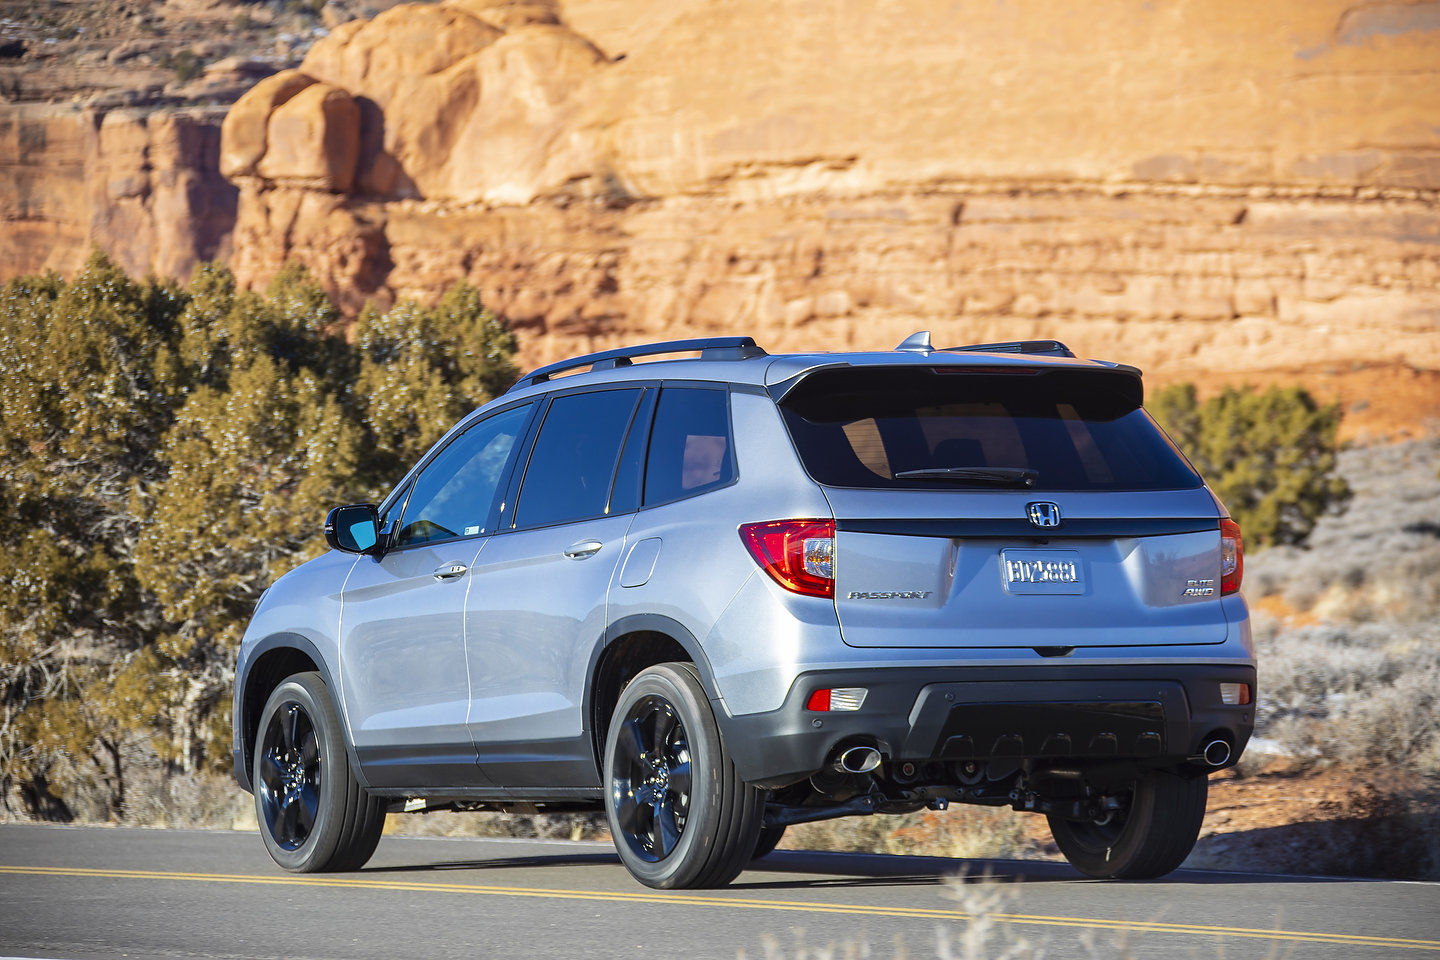 2019 Honda Passport vs 2019 Chevrolet Blazer